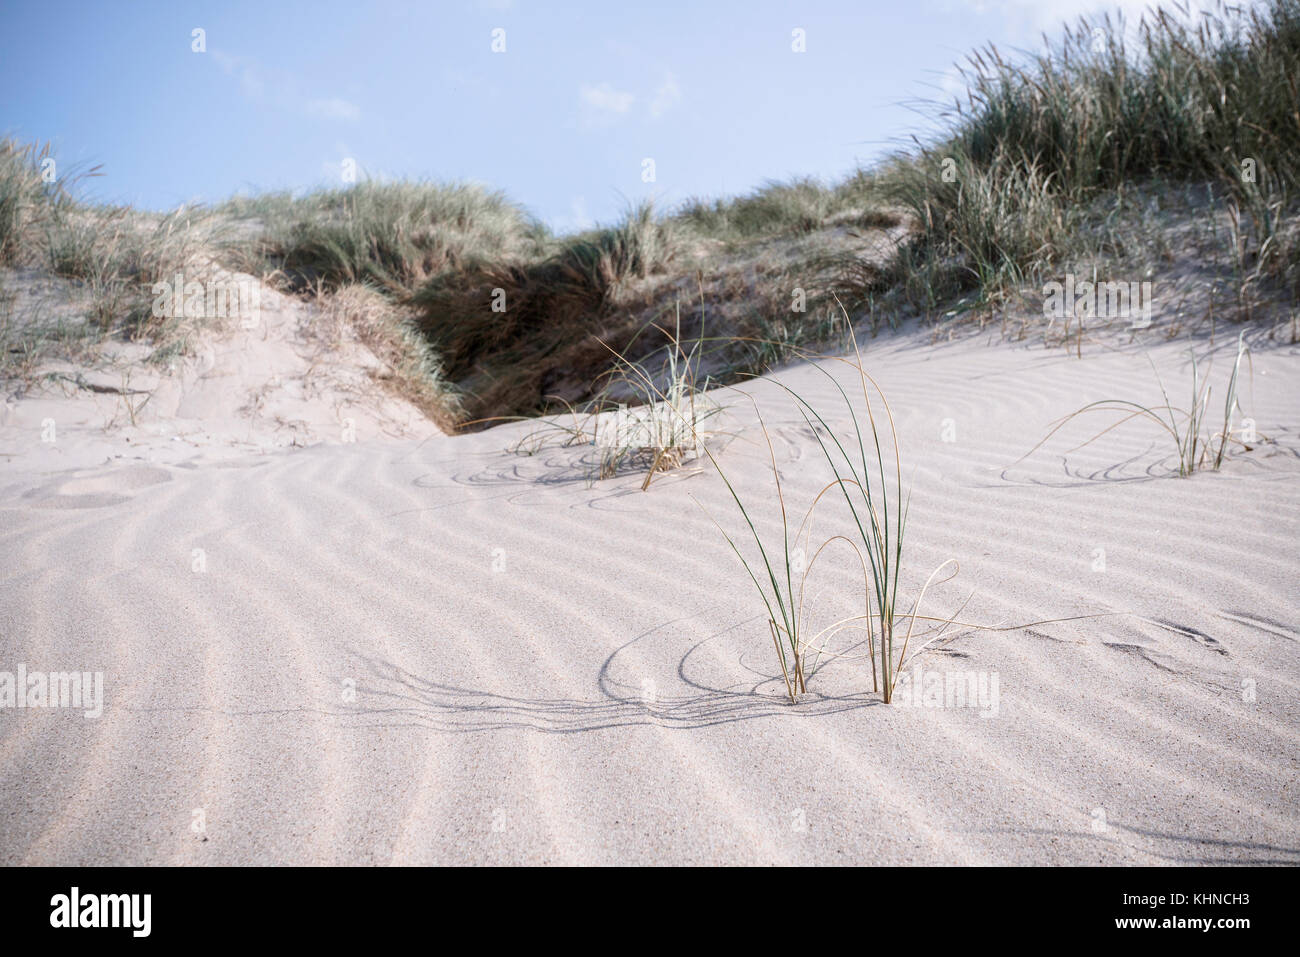 Lyme grass on a dune near the sea in Denmark in the summer - Stock Image